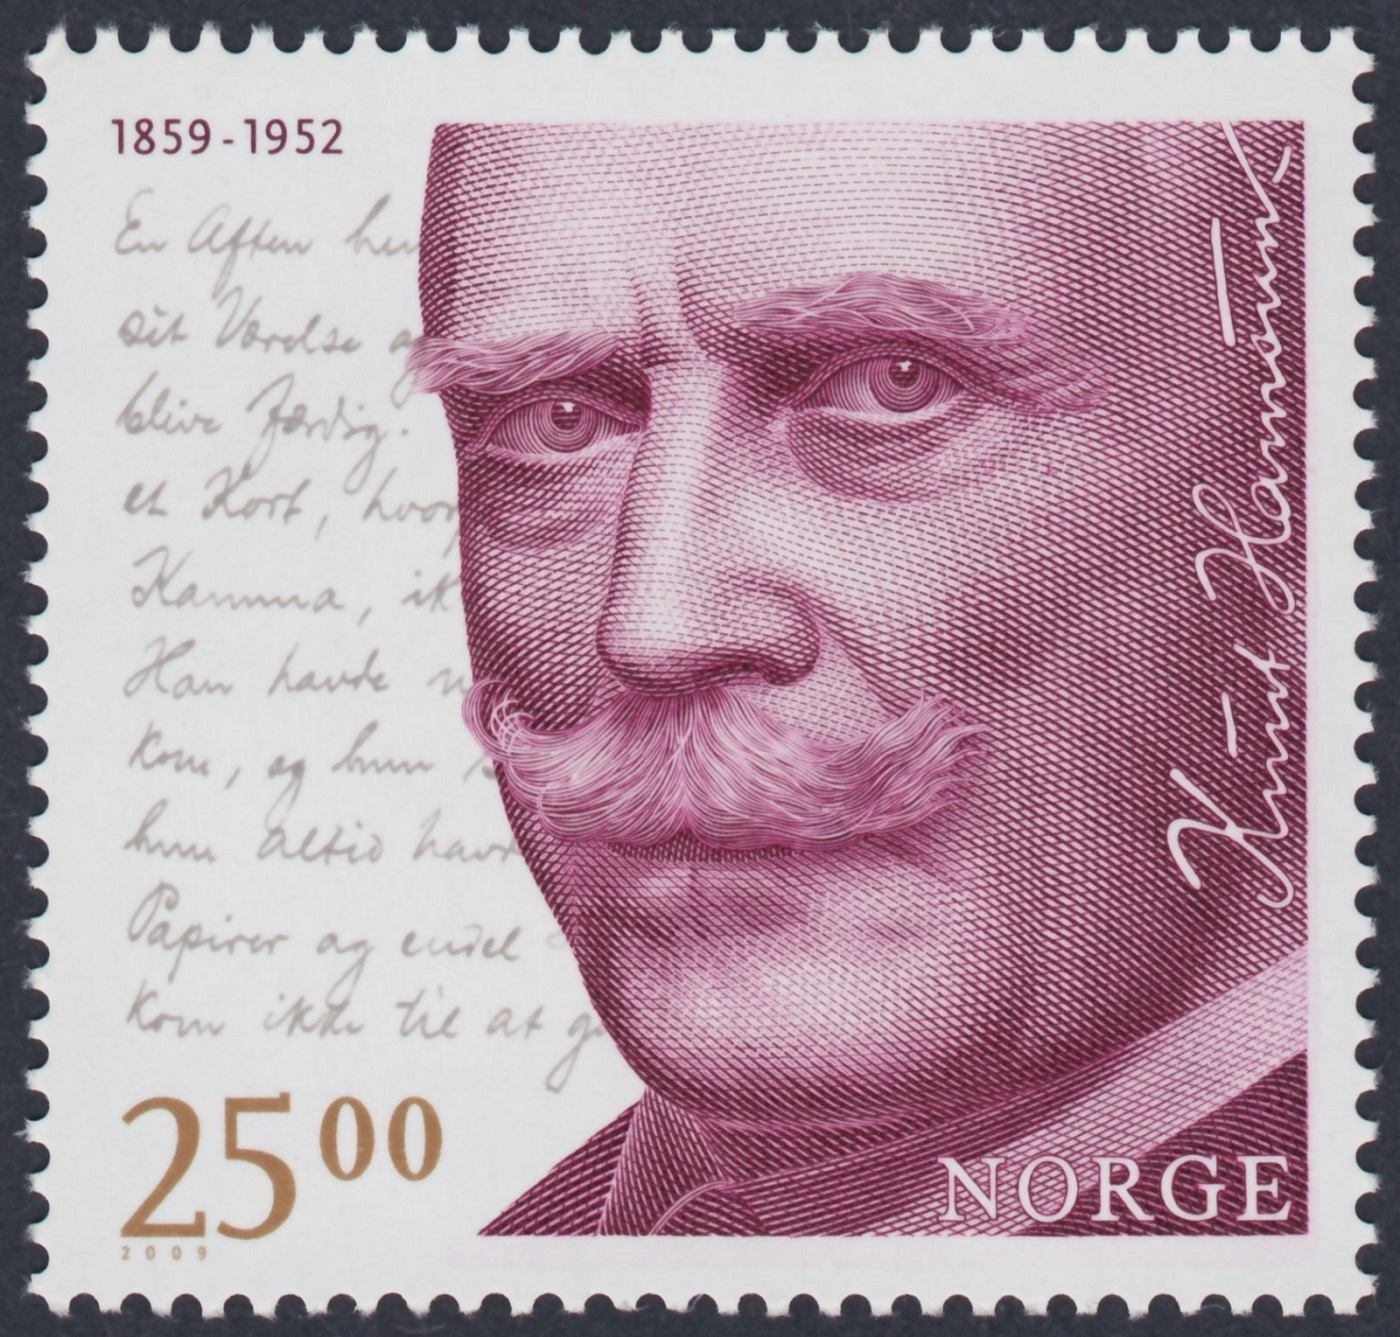 2009_Noruega_150th Anniversary of Birth of Knut Hamsun_Recess offset by Royal Joh. Enschedé, Netherlands__p_result.jpg